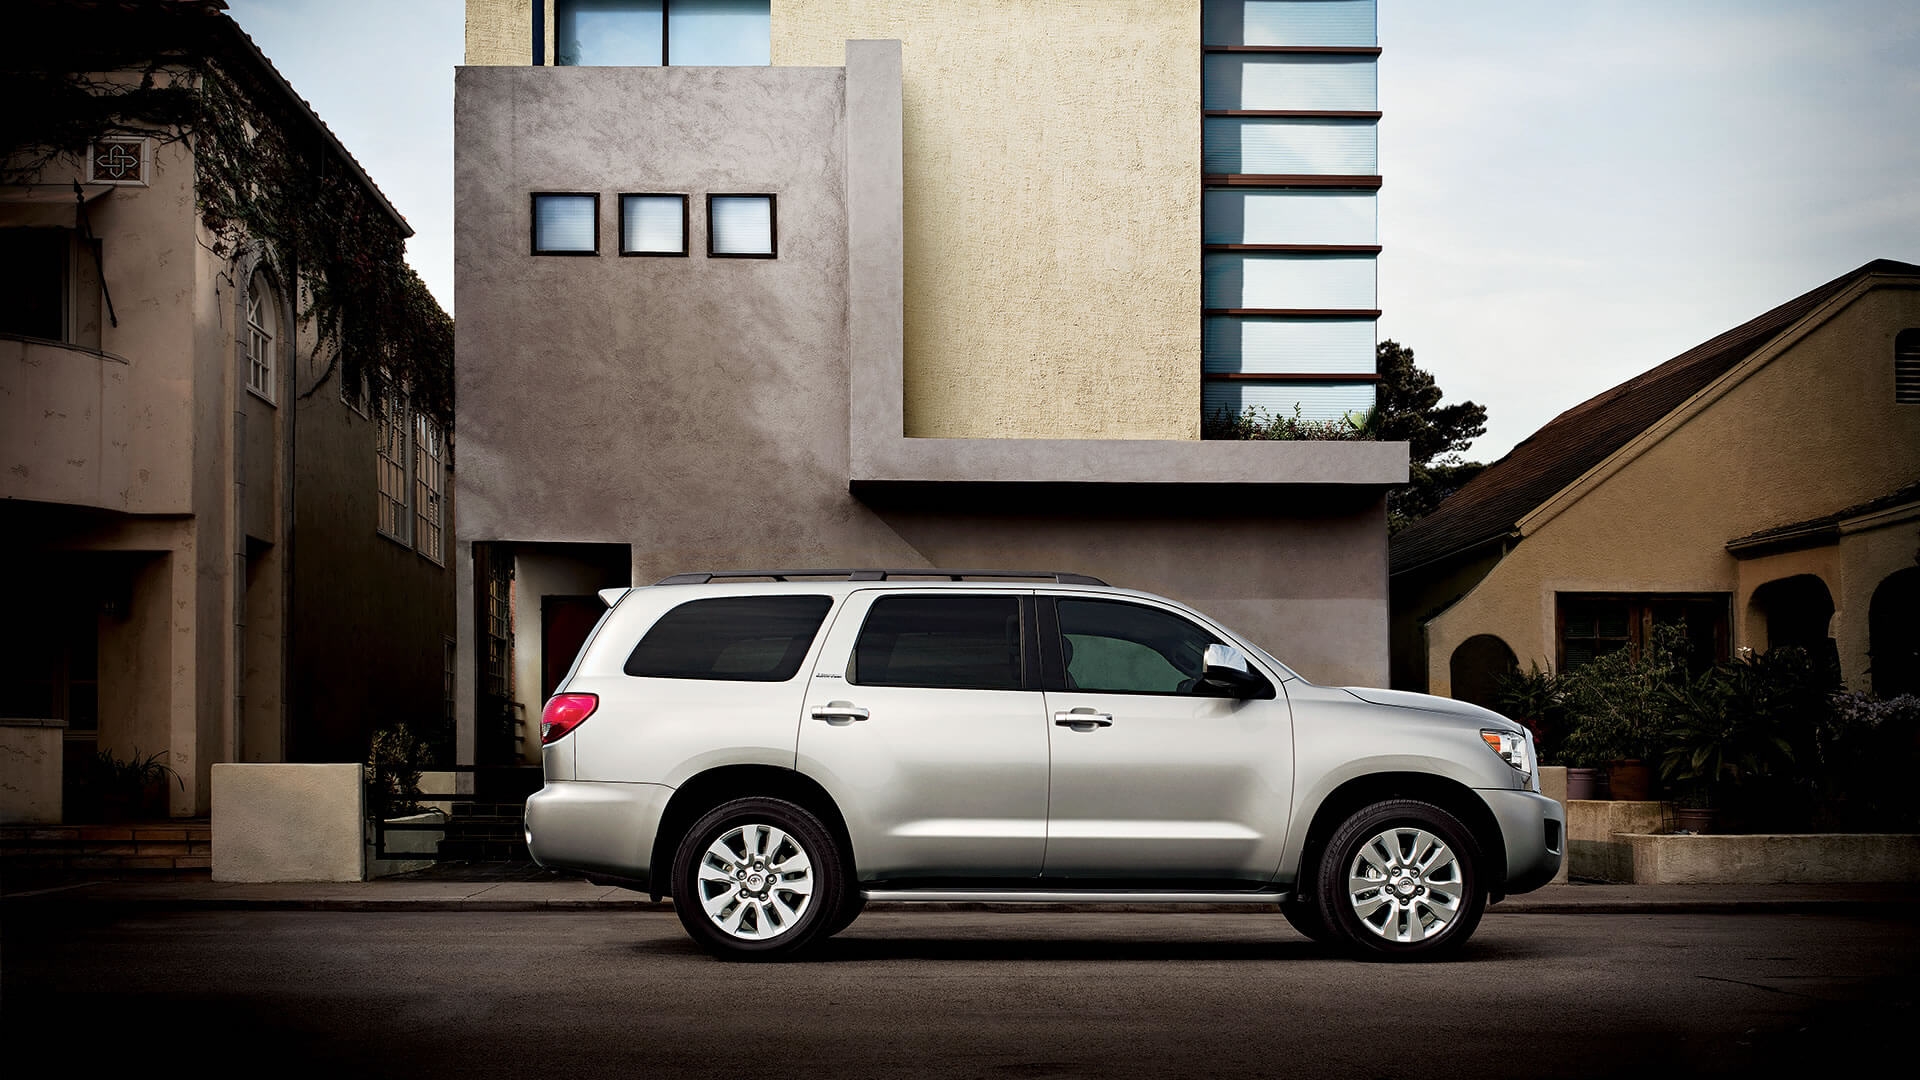 The 8 Seater 2017 Toyota Sequoia Provides V8 Power As Standard Fuel Filter Location